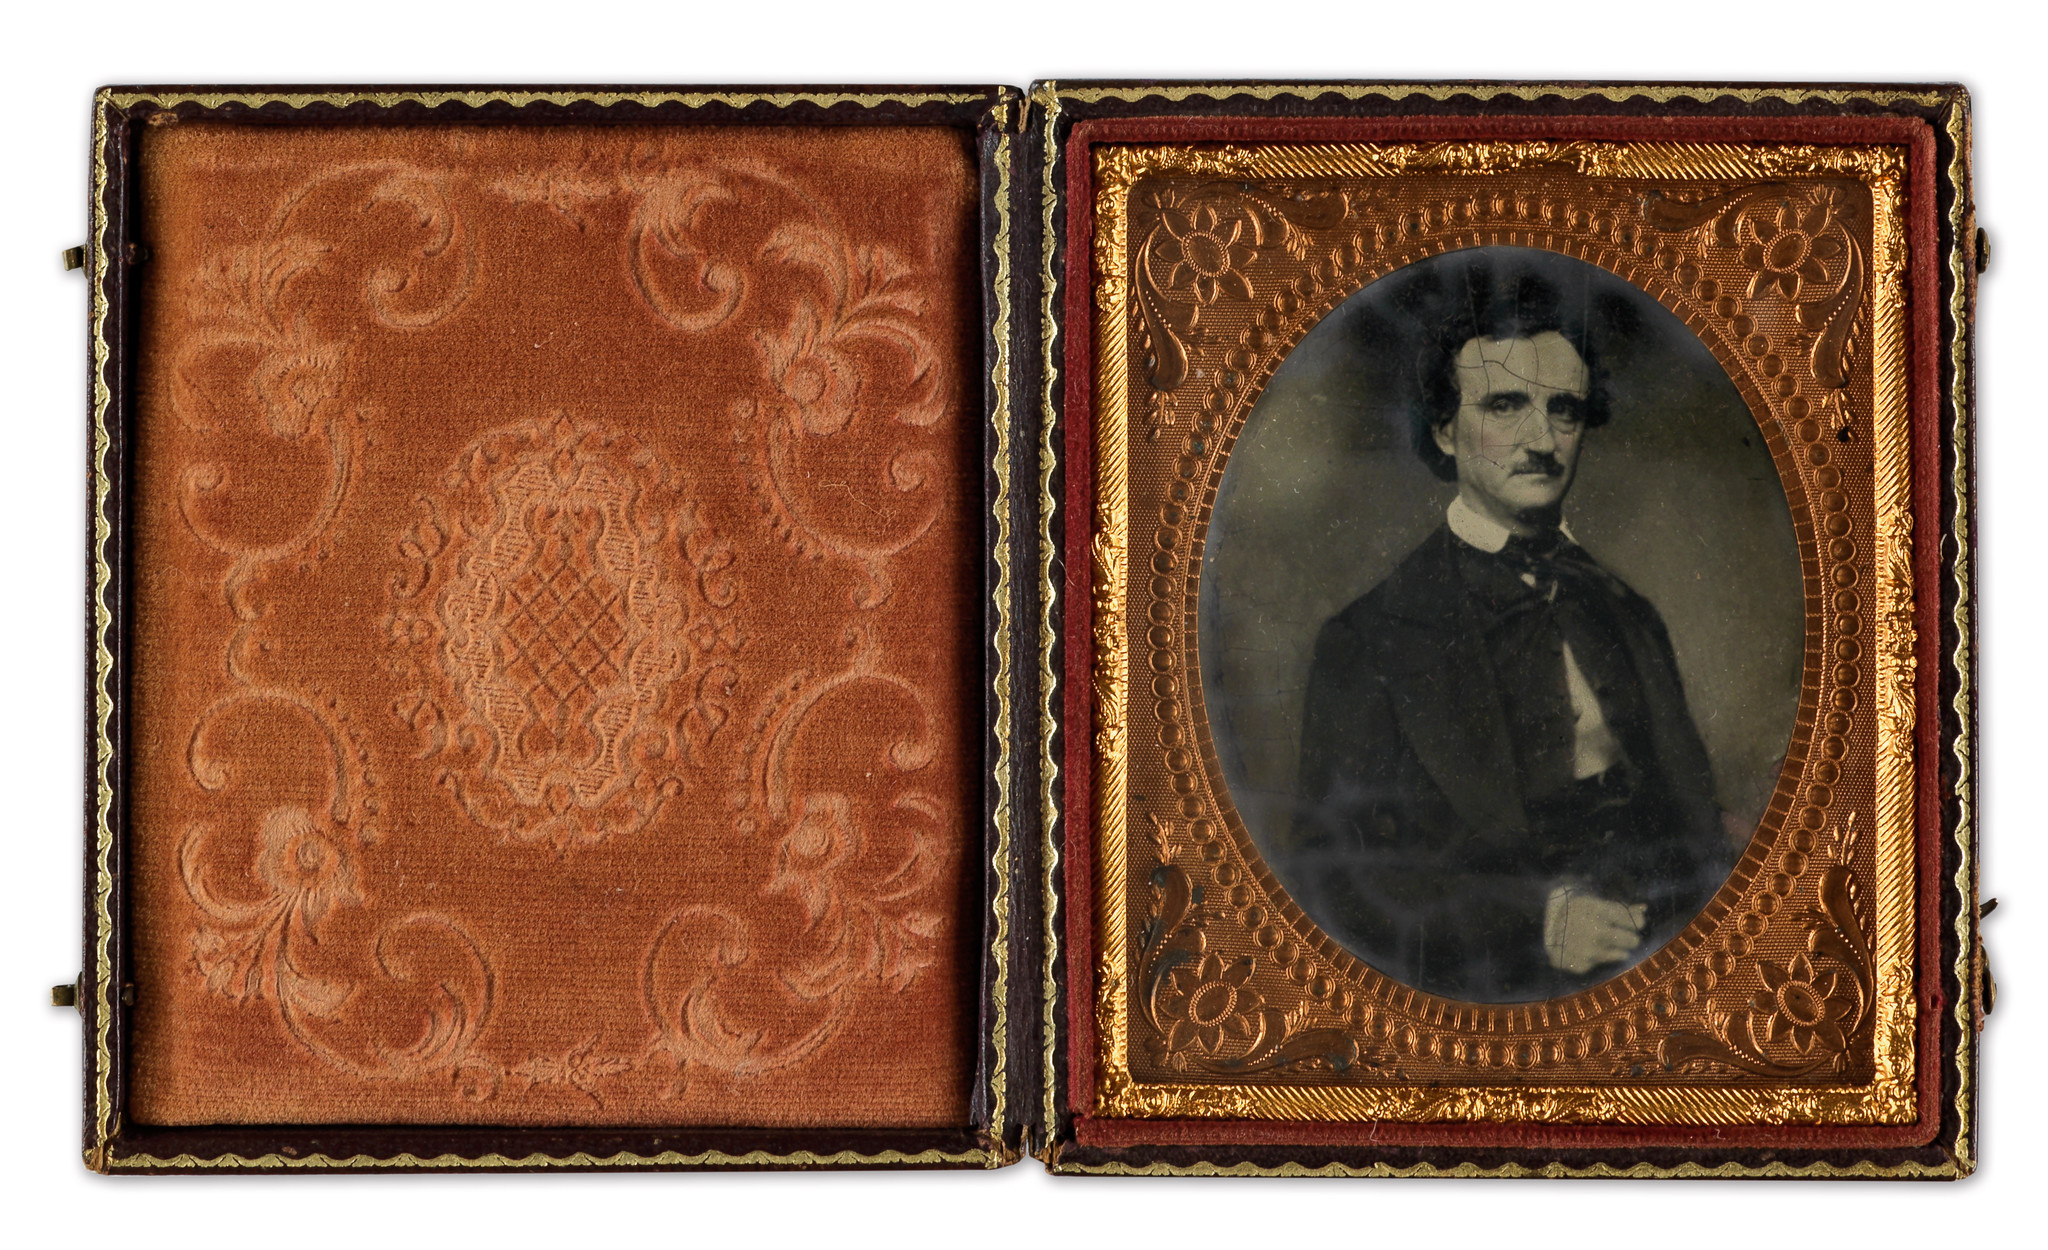 Rare Photo Of Edgar Allan Poe Goes Up For Auction At New